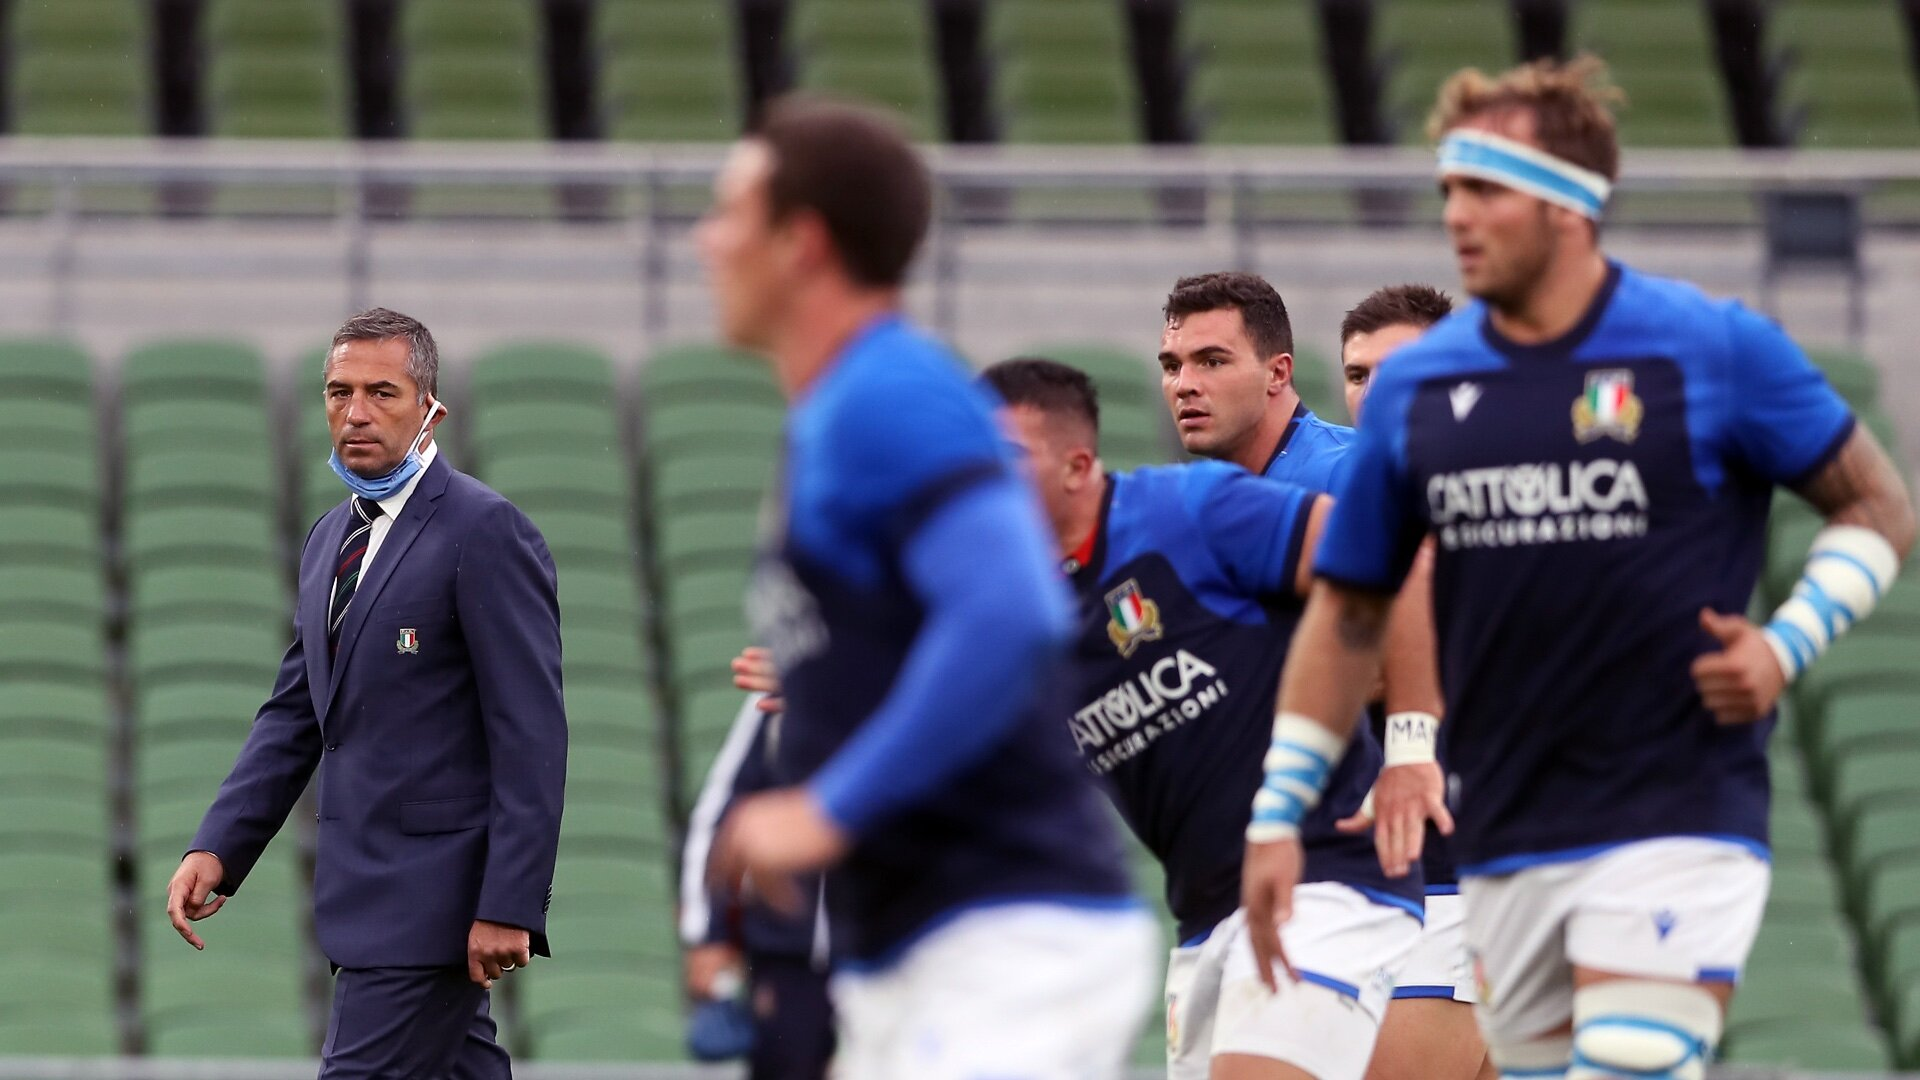 Italy make just 1 change for Saturday's Six Nations visit by England